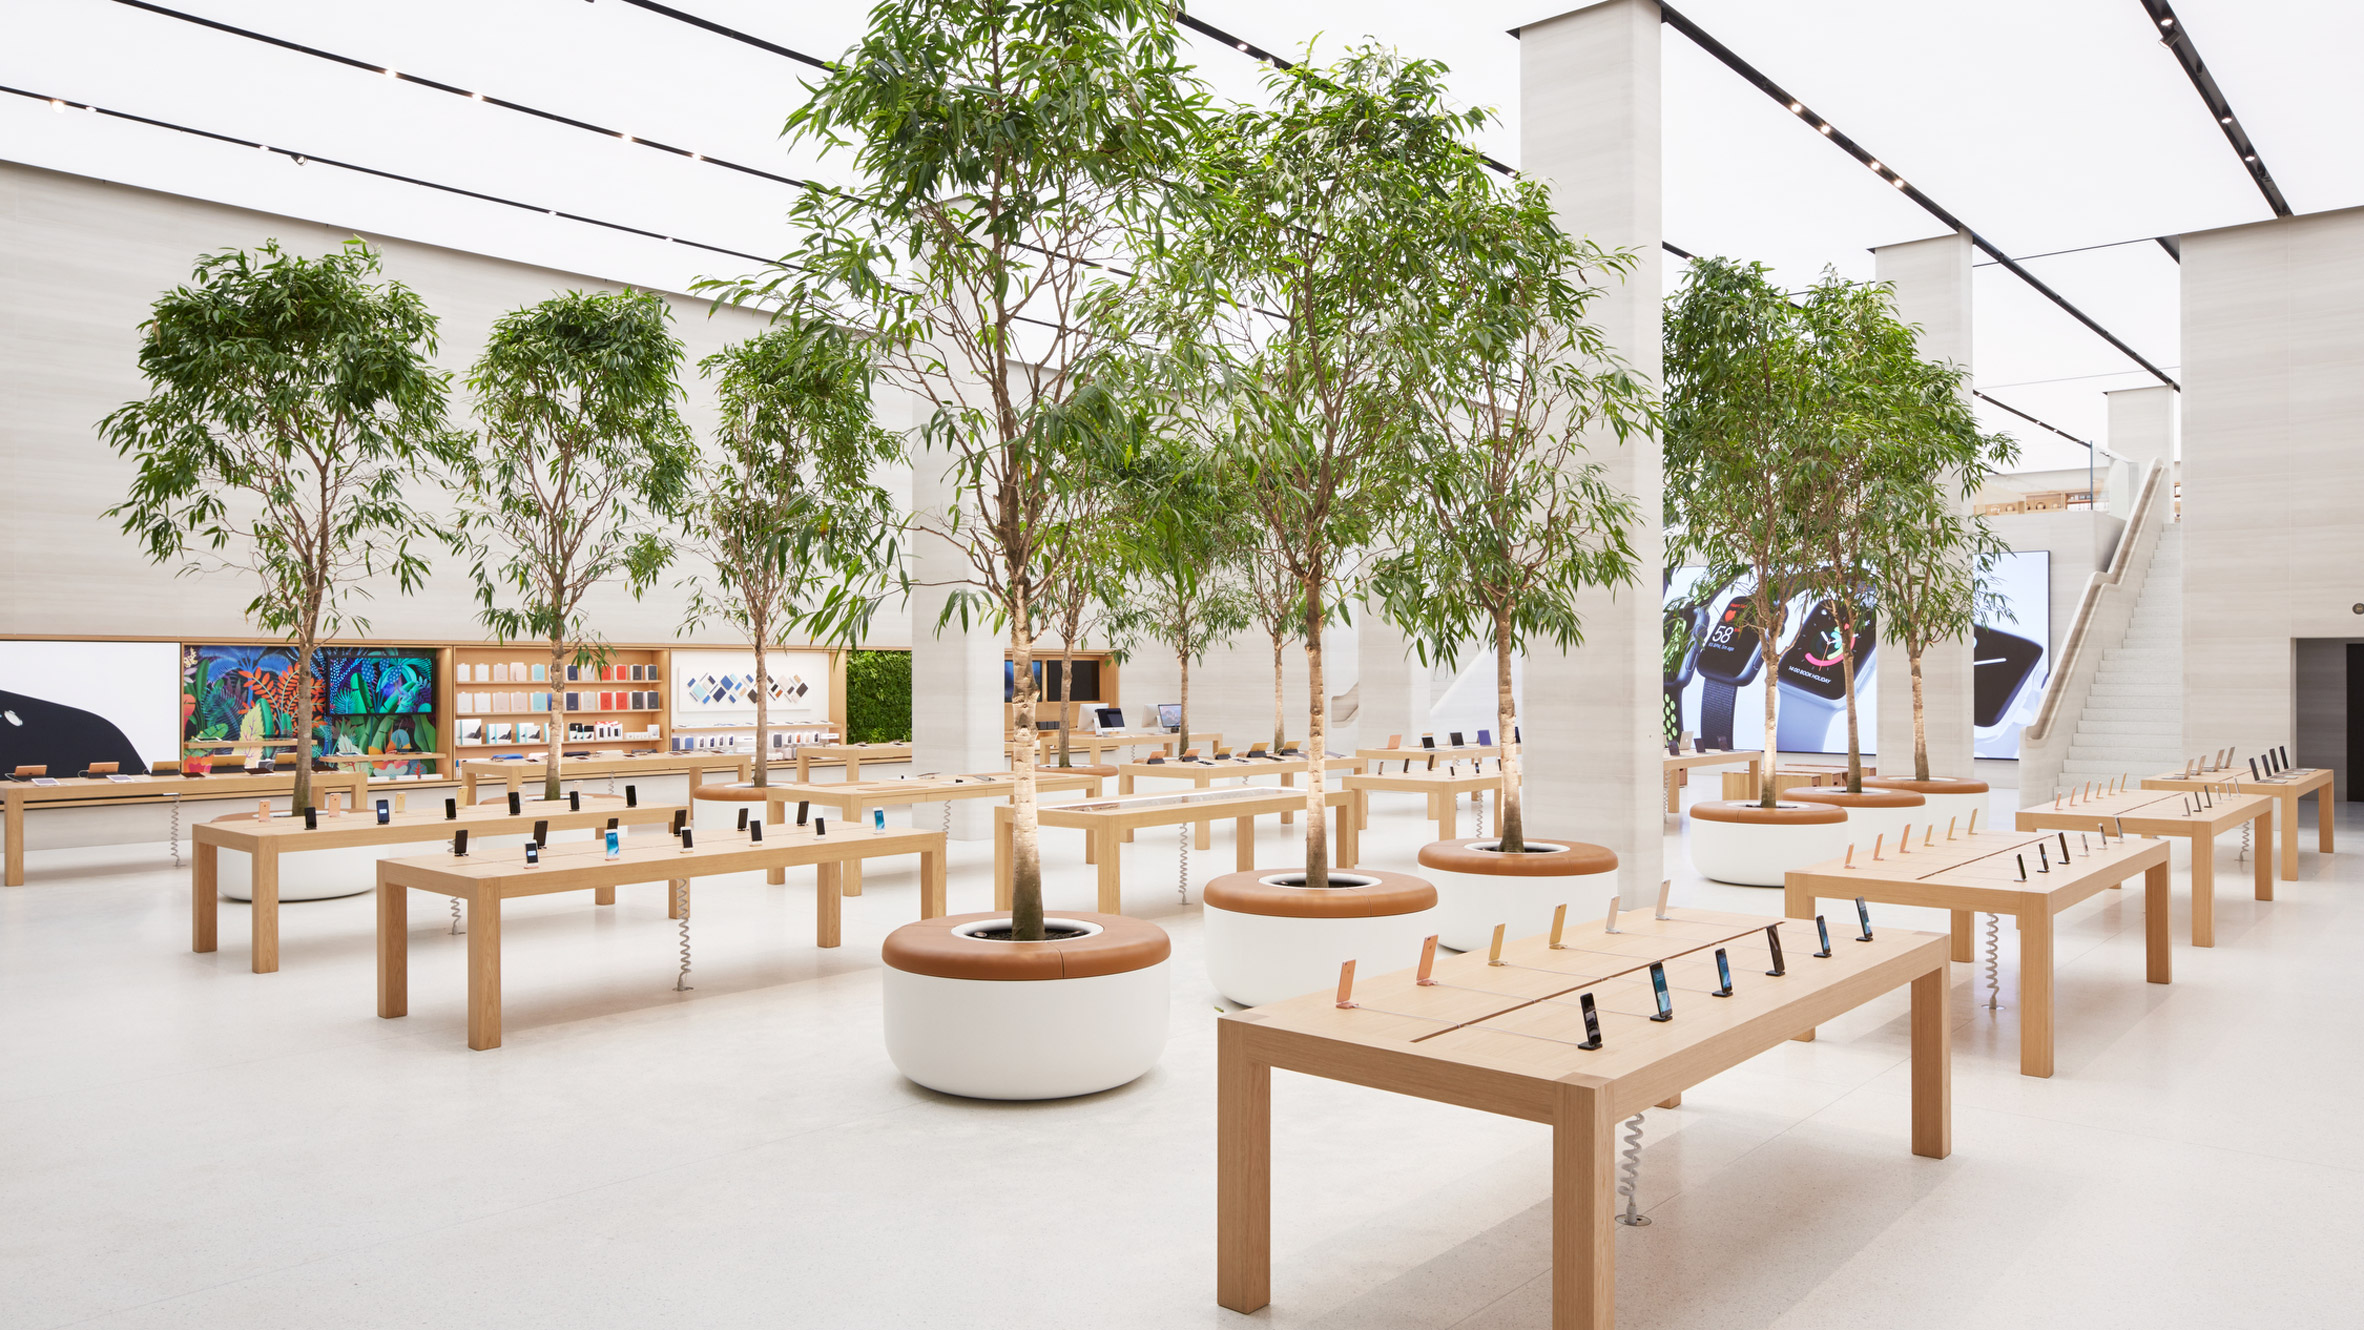 apple-regent-street-foster-partners-london_dezeen_2364_ss_0